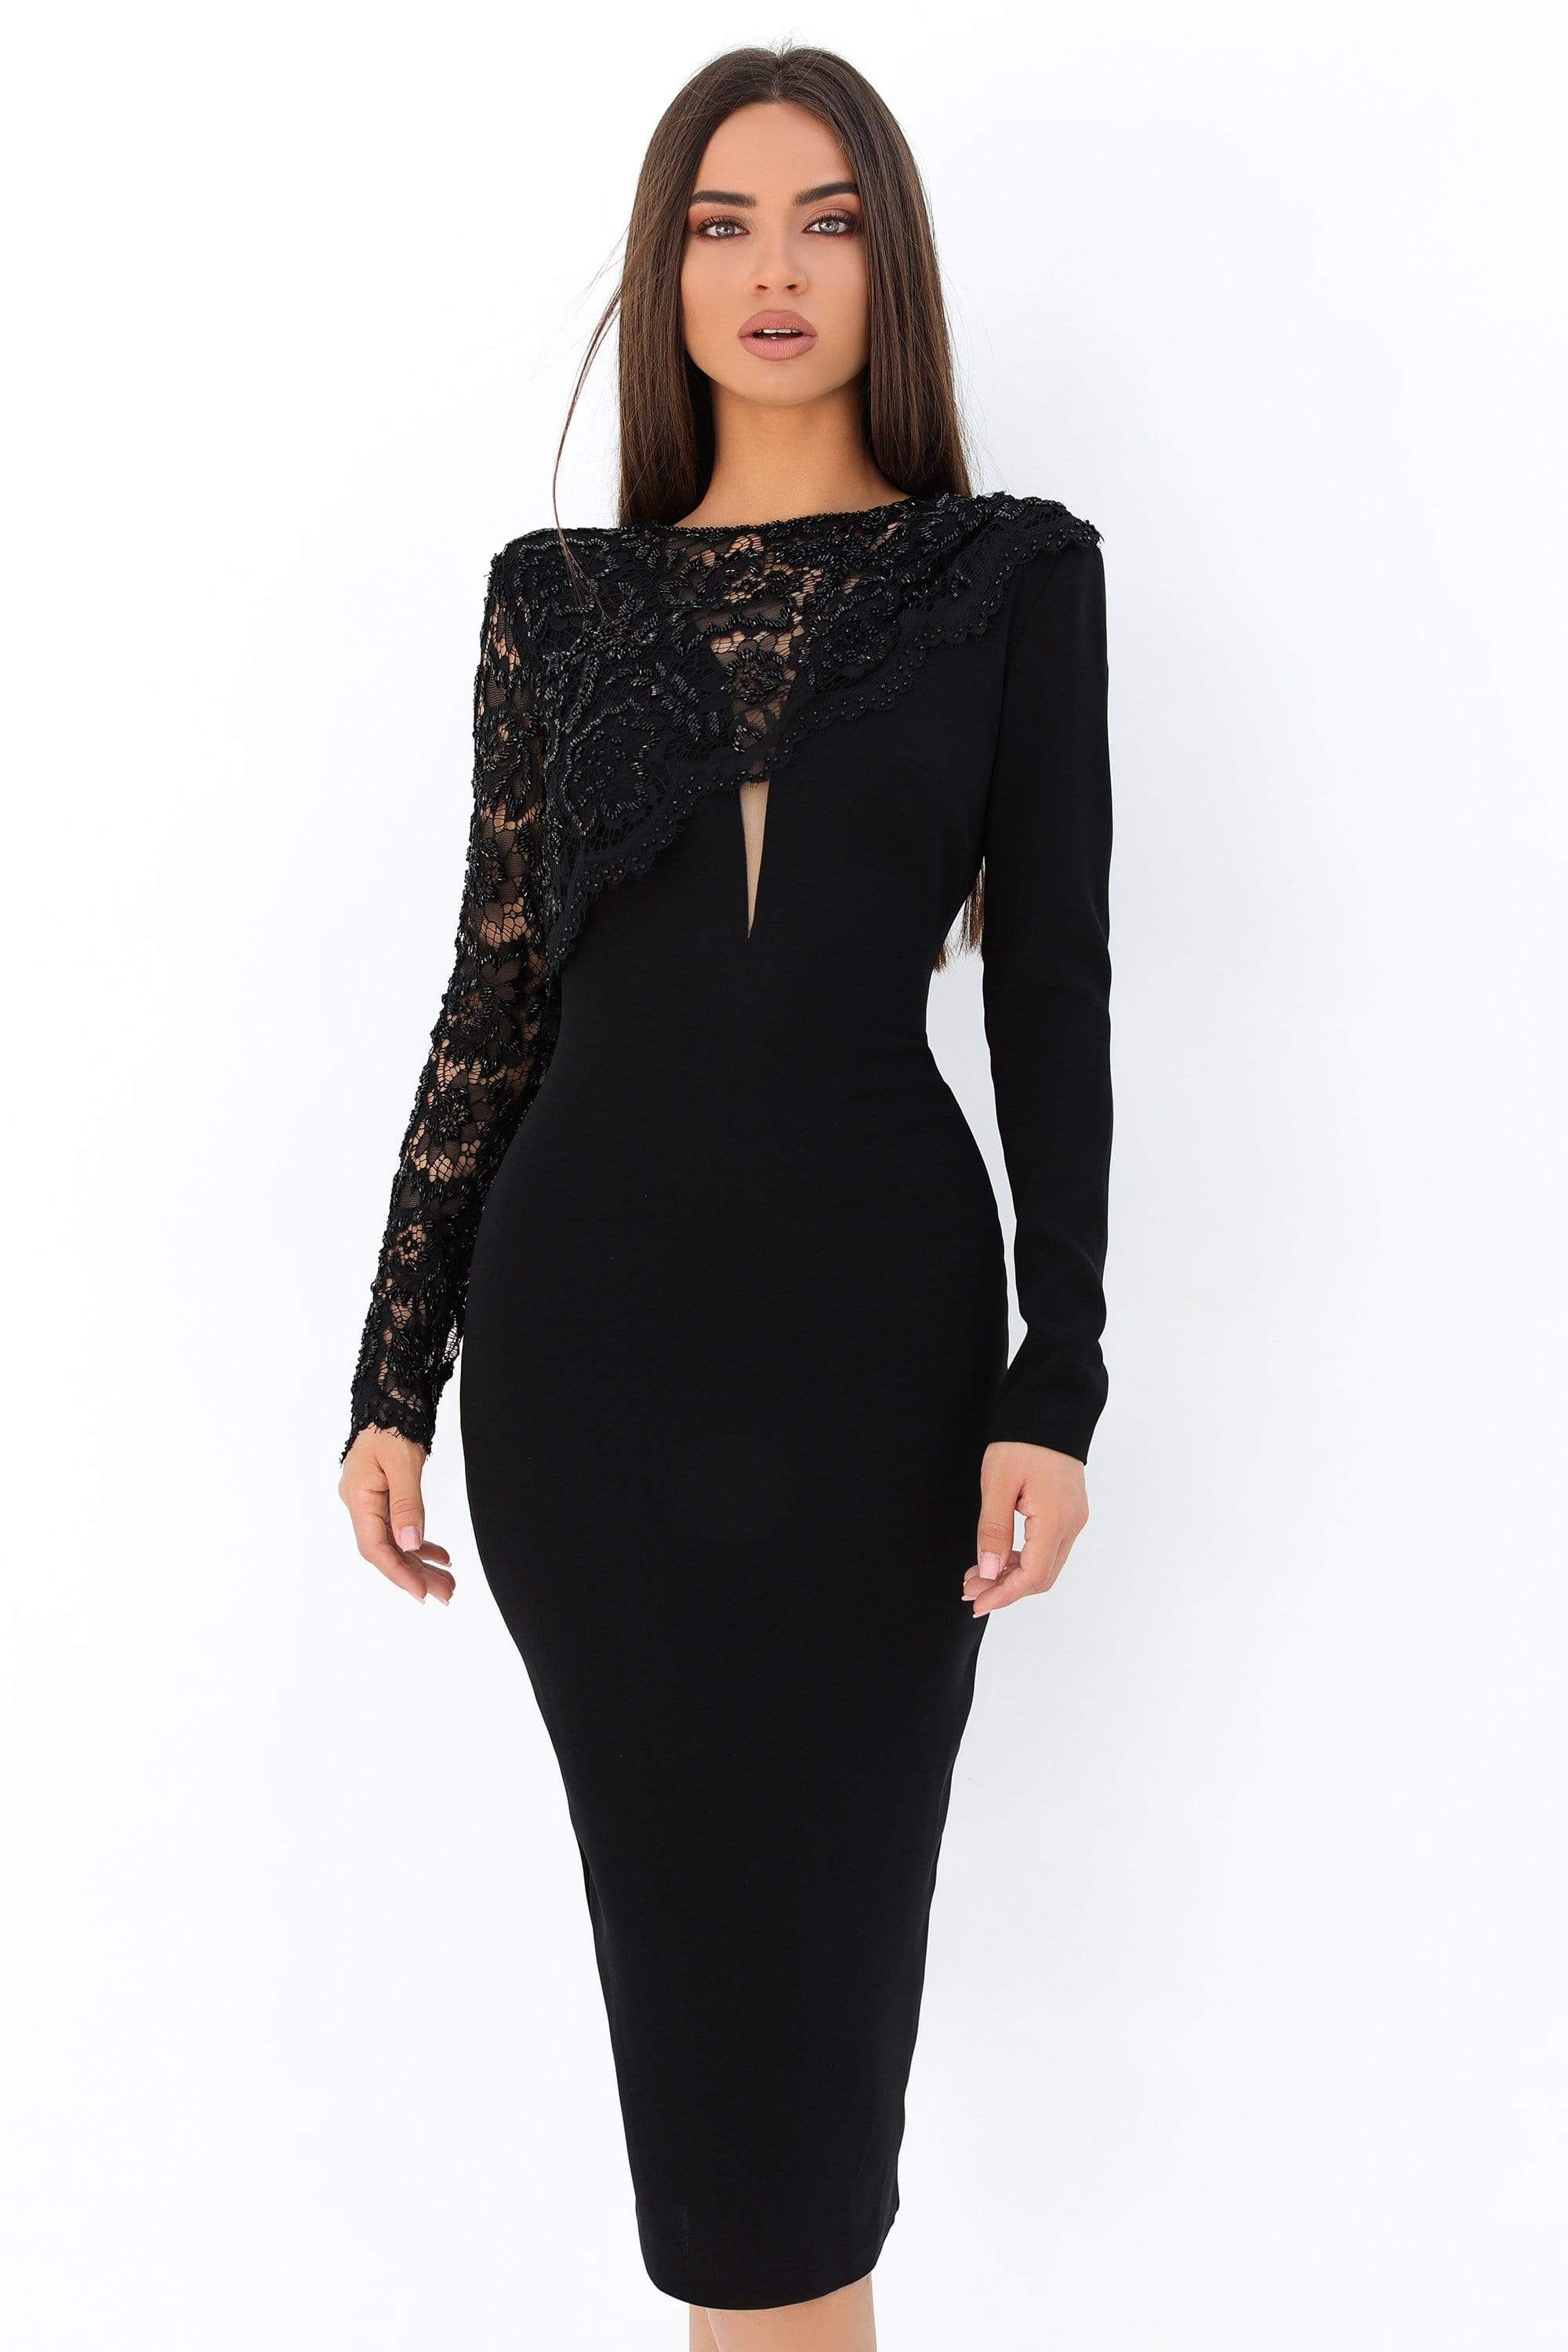 Tarik Ediz - 93870 Beaded Lace Long Sleeve Fitted Dress Party Dresses 0 / Black